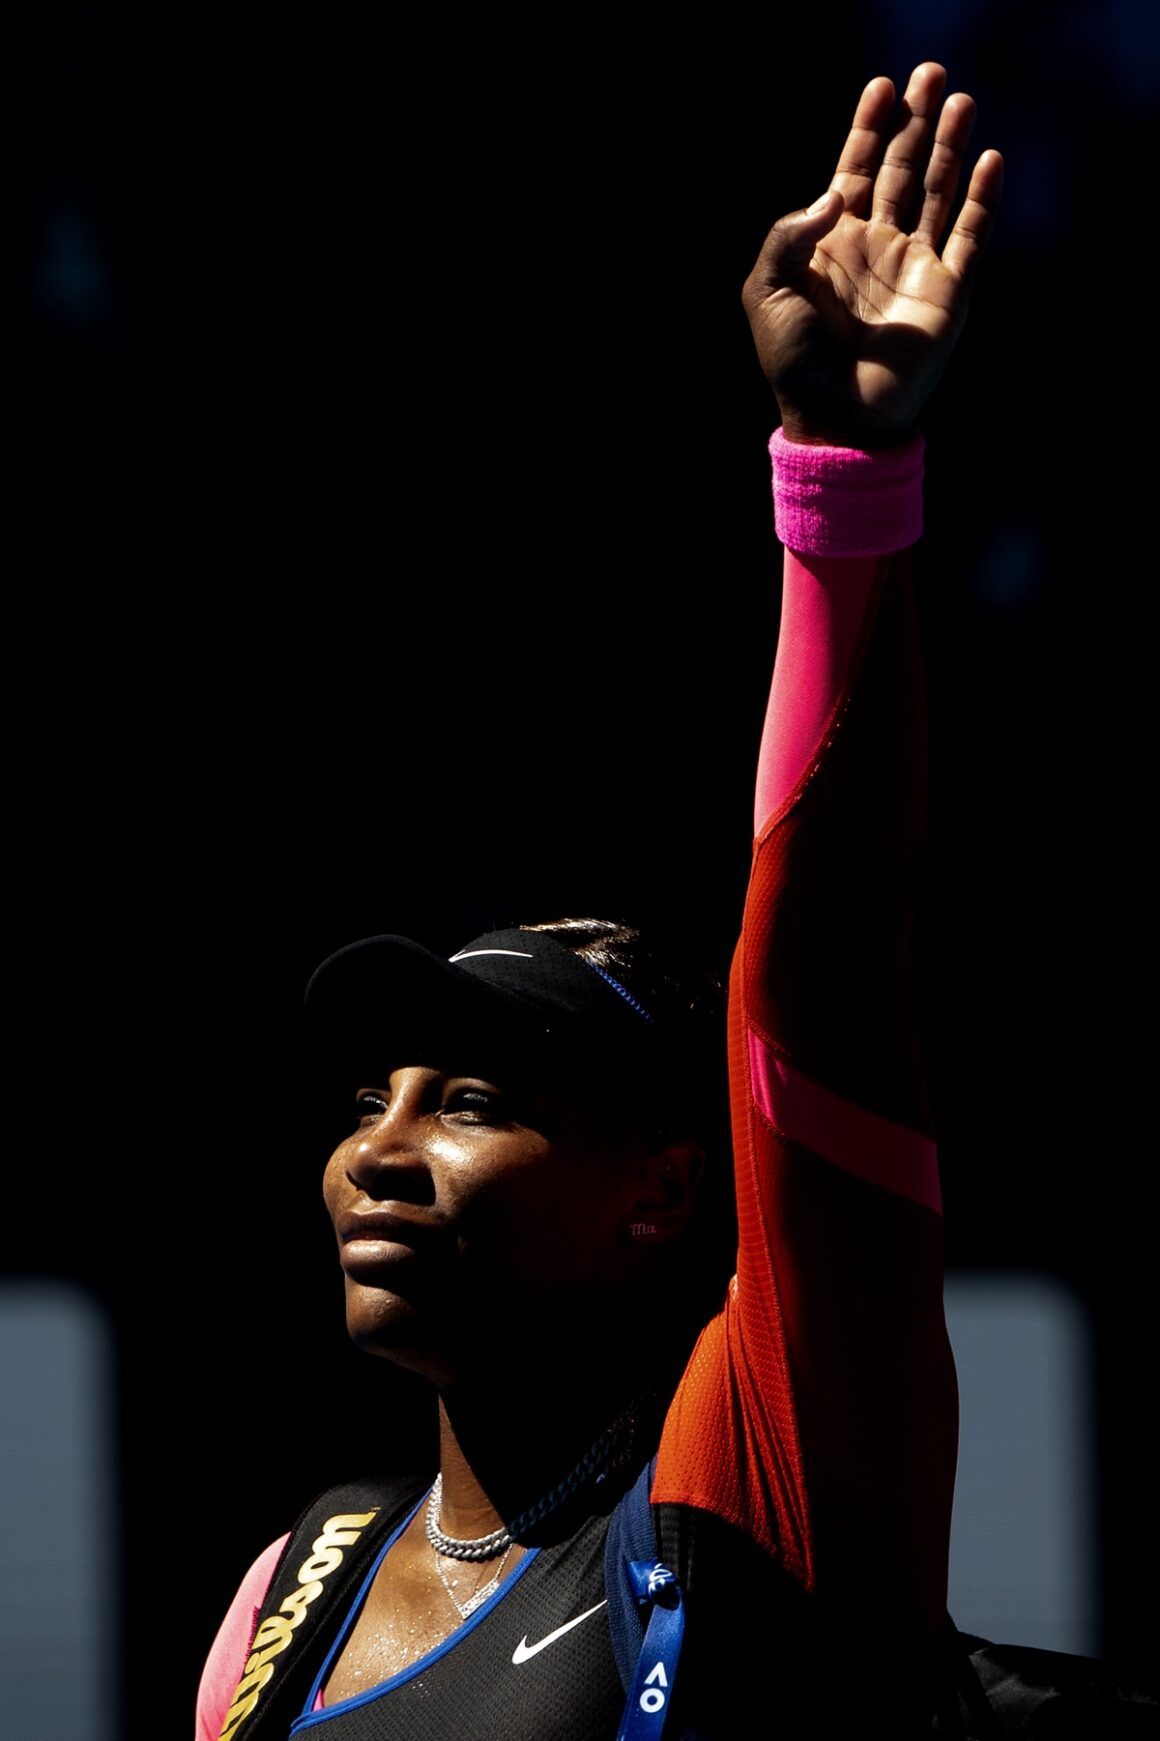 Serena Williams 2021 Australian Open: Day 11